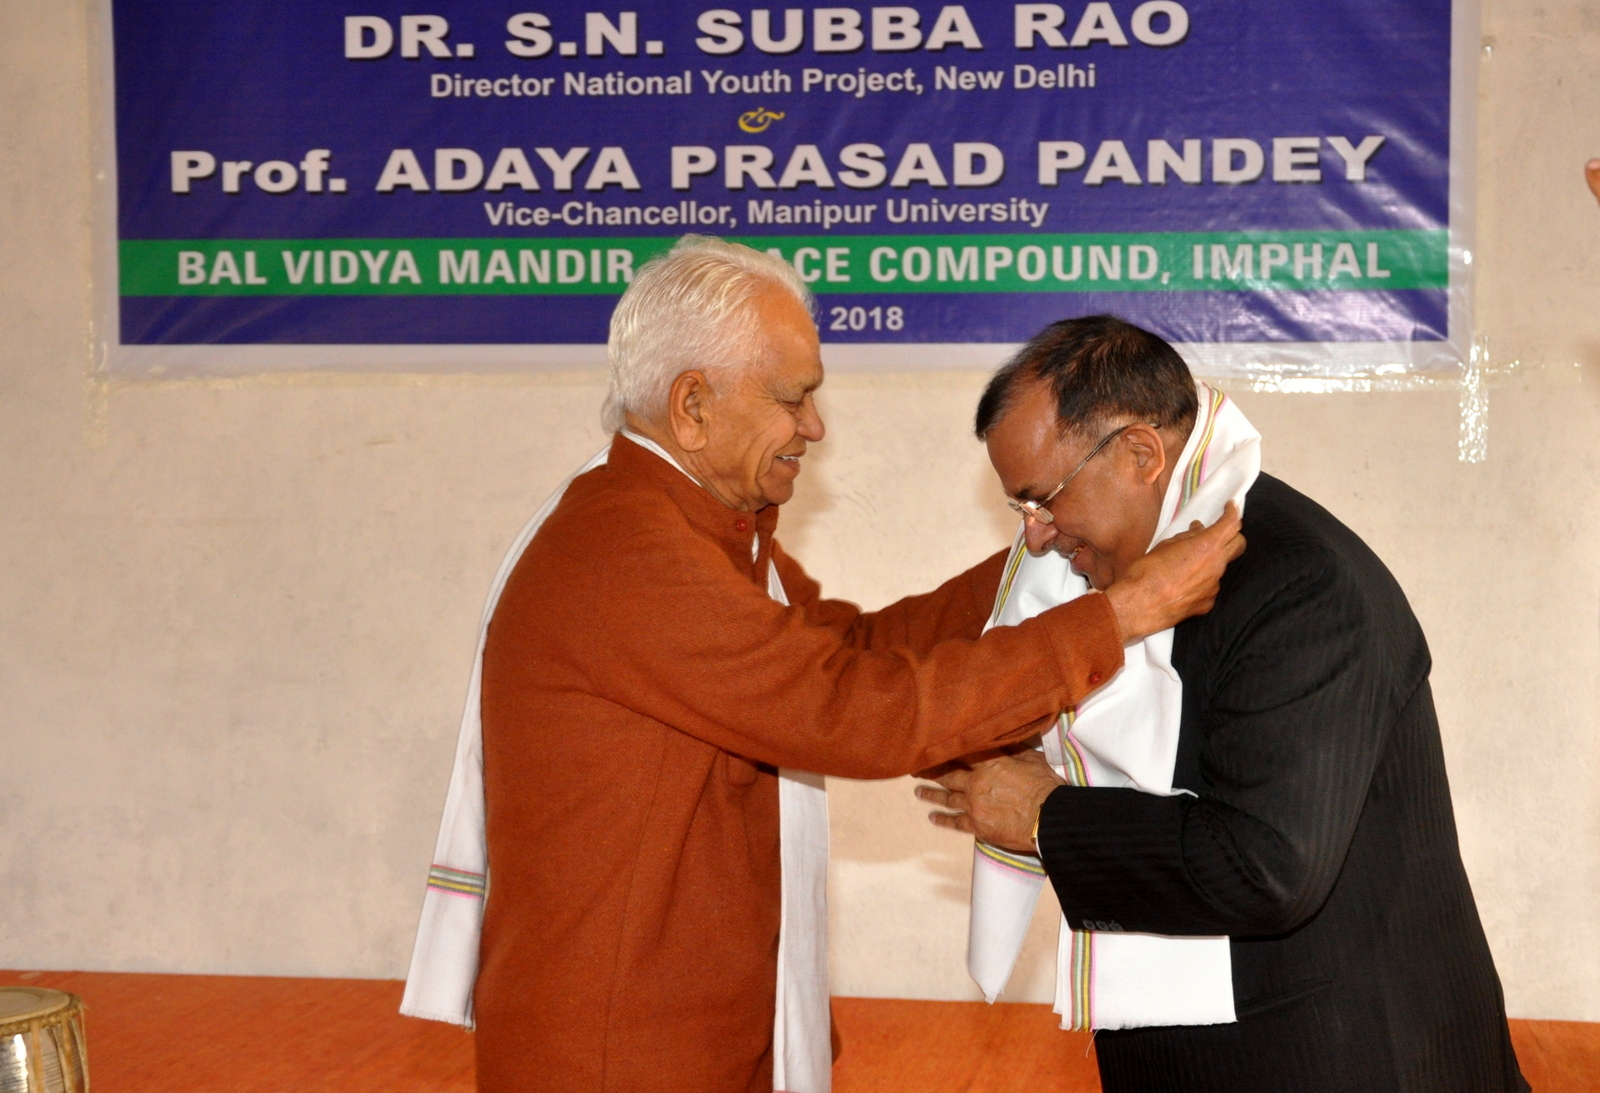 Reception Ceremony in Honour of Dr. S.N Subba Rao